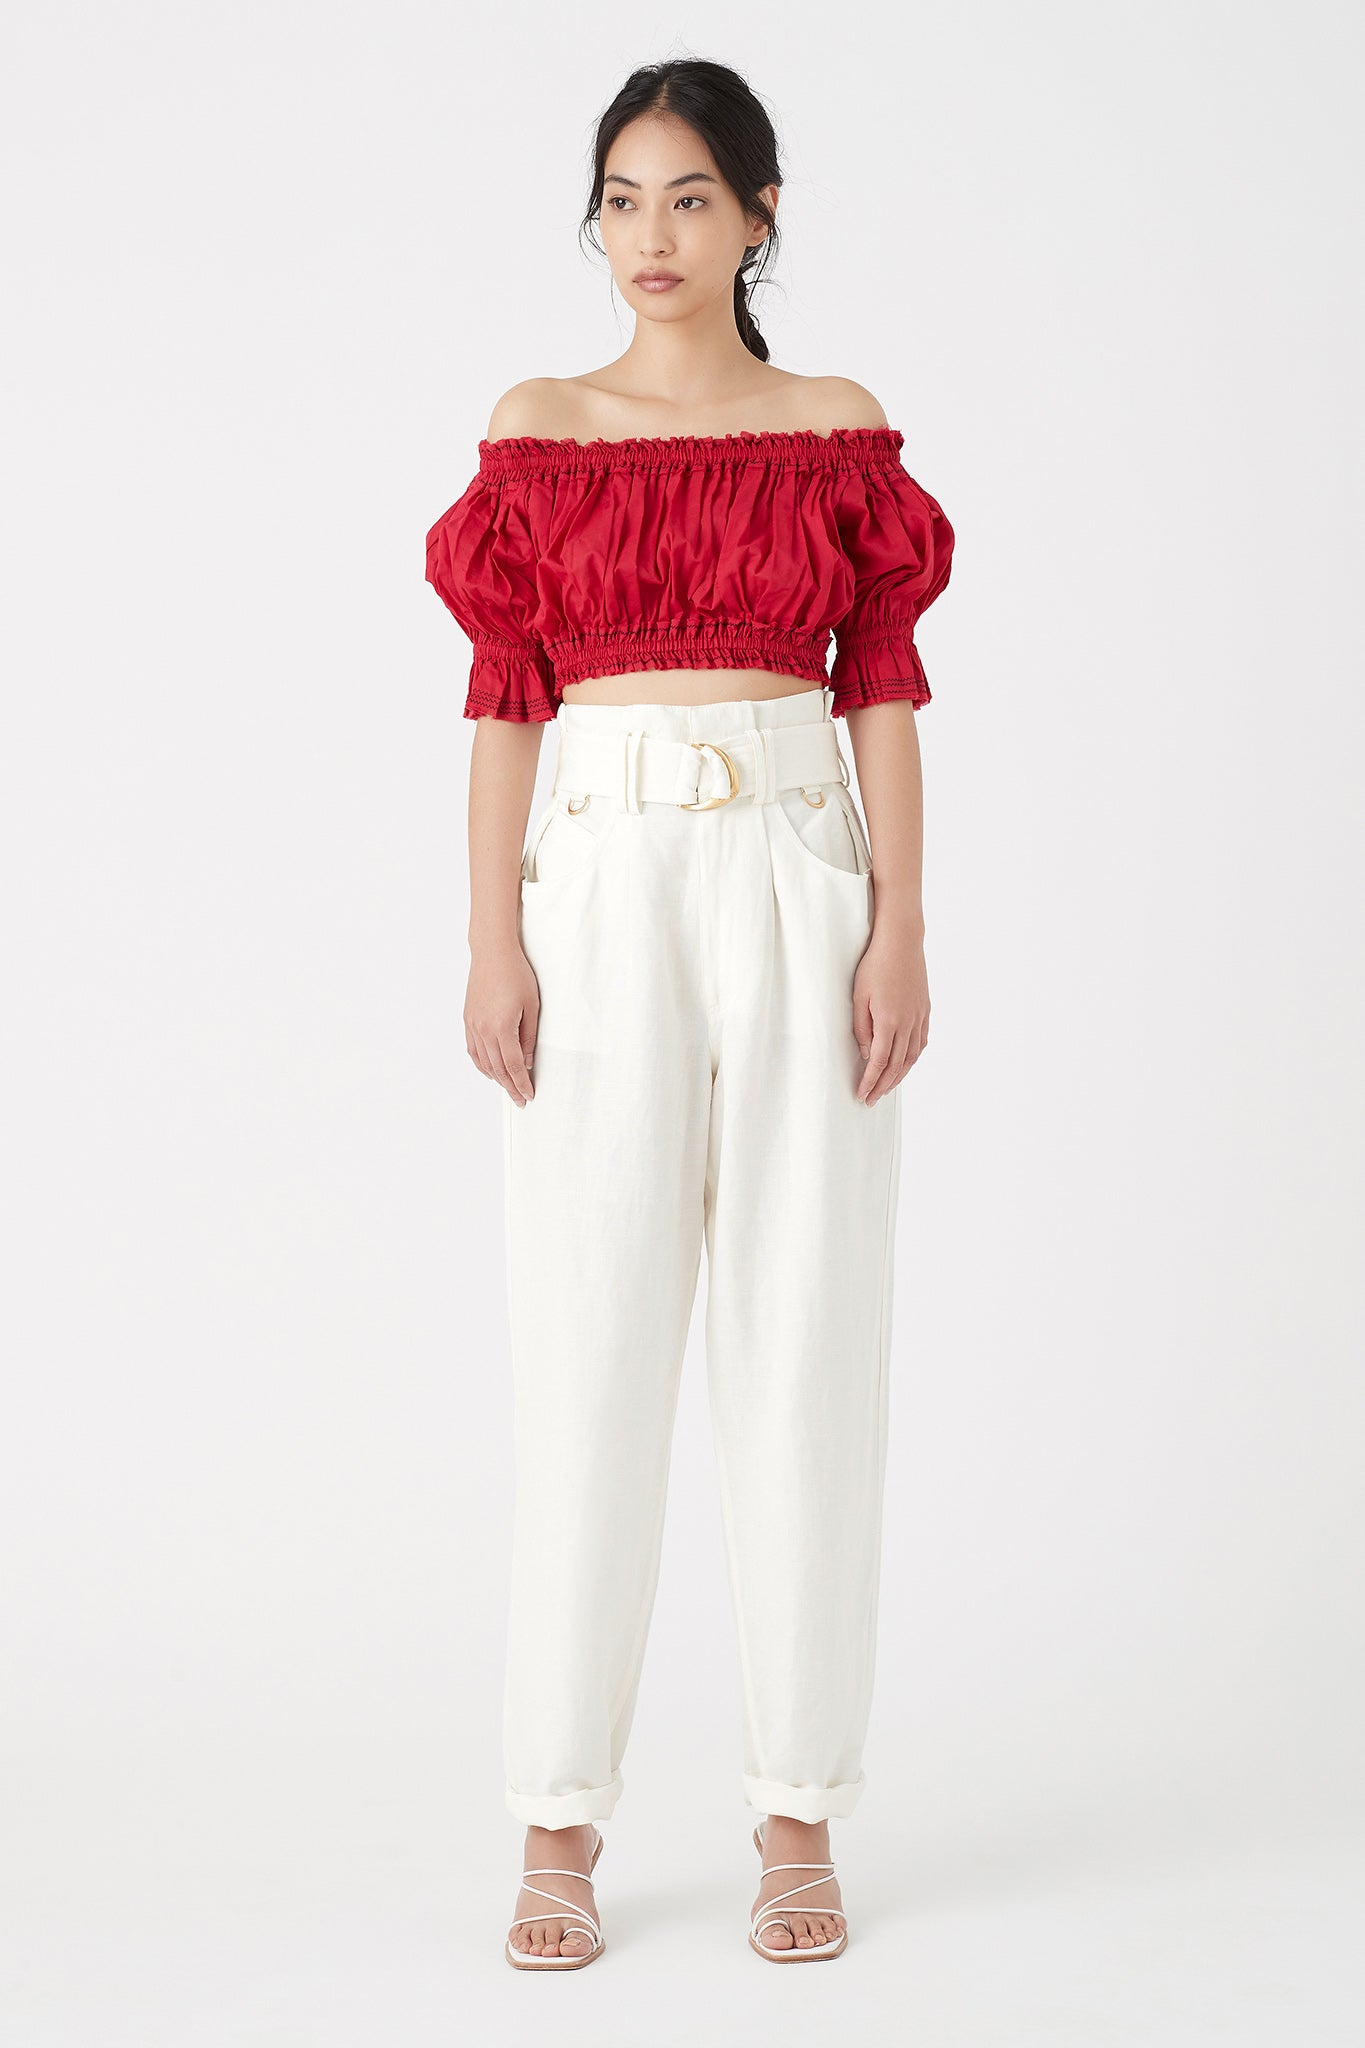 Banksia Ruffle Crop Blouse Outfit View